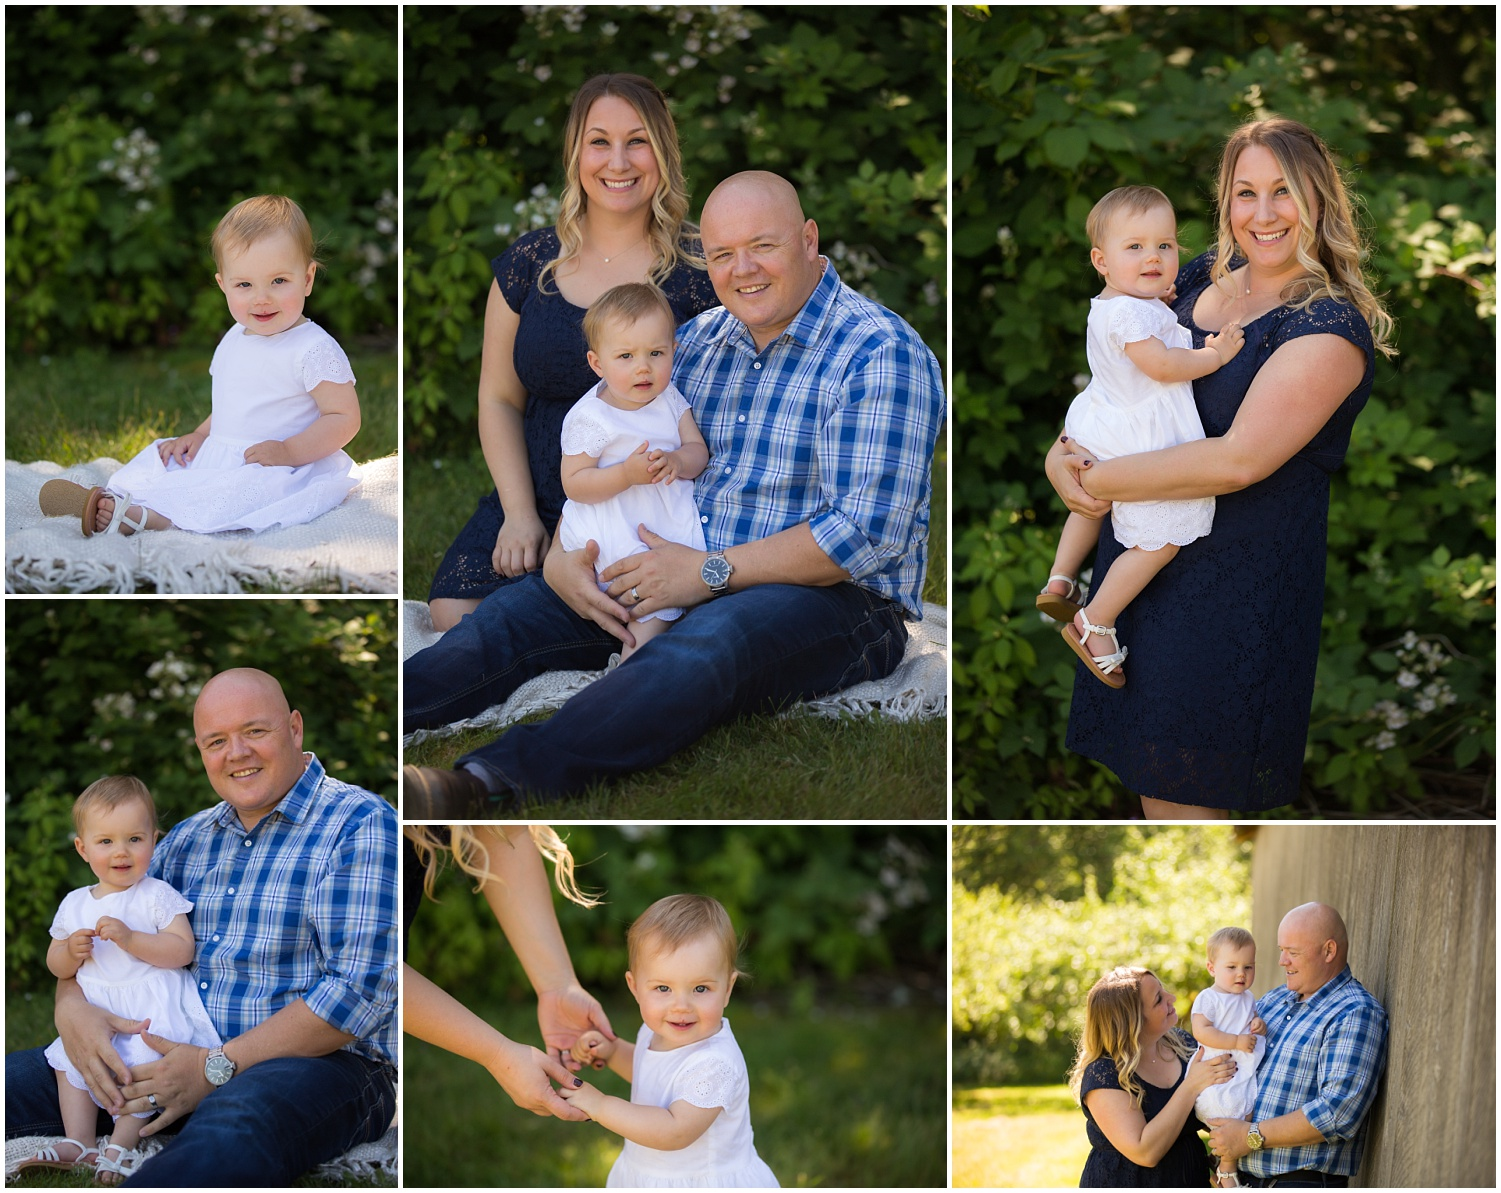 Amazing Day Photography - Stewart Farm House Family Session - Photo 4 Hope - BC Childrens Hospital Fundraiser (6).jpg